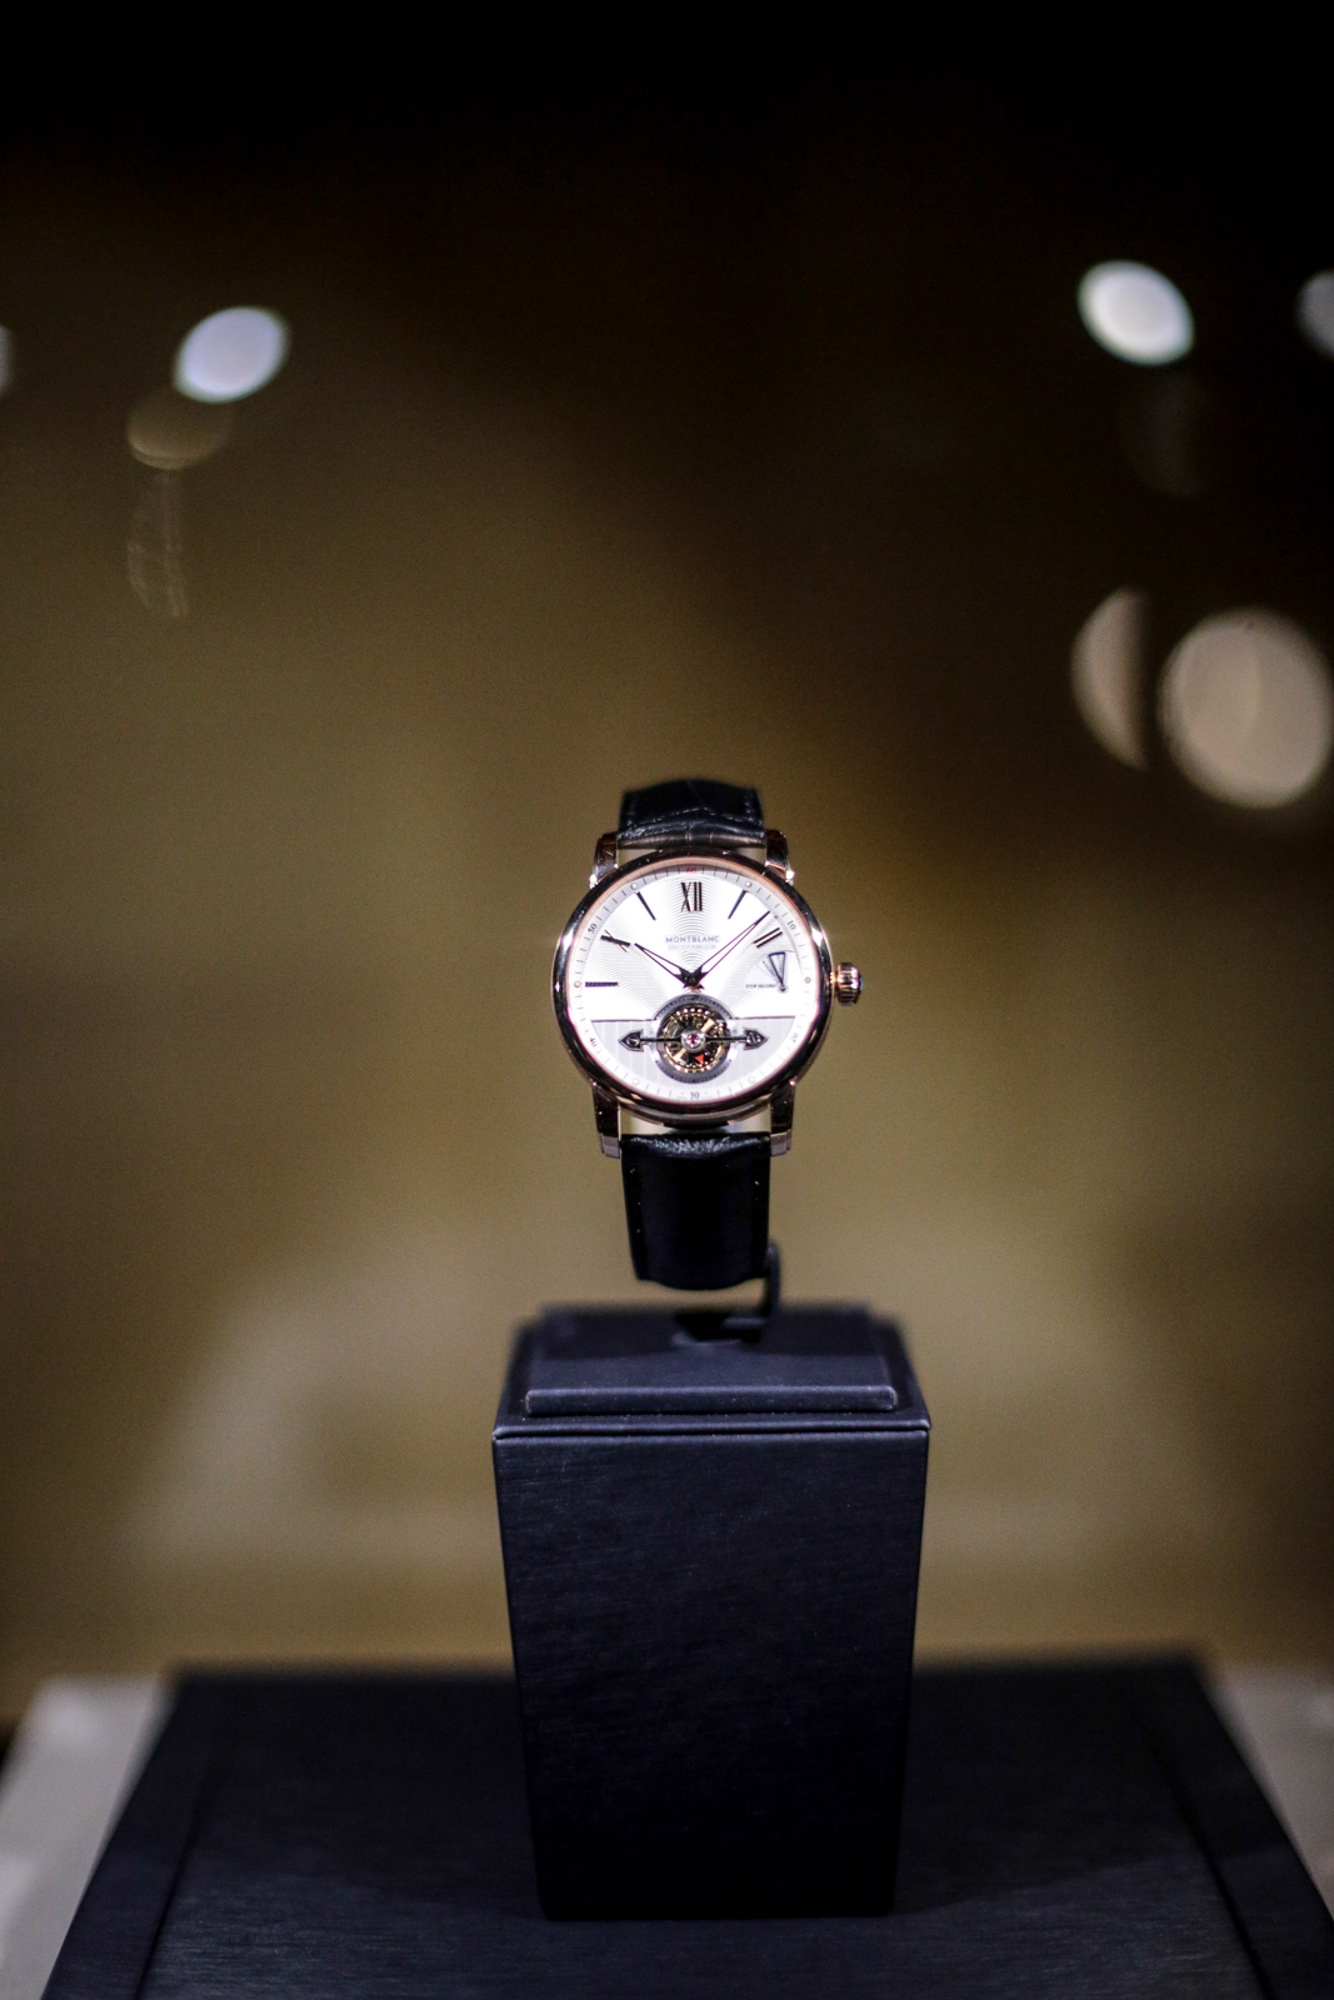 Montblanc at the SIHH 2016 The latest creations presented at the International Fine Watchmaking Exhibition (SIHH) in Geneva